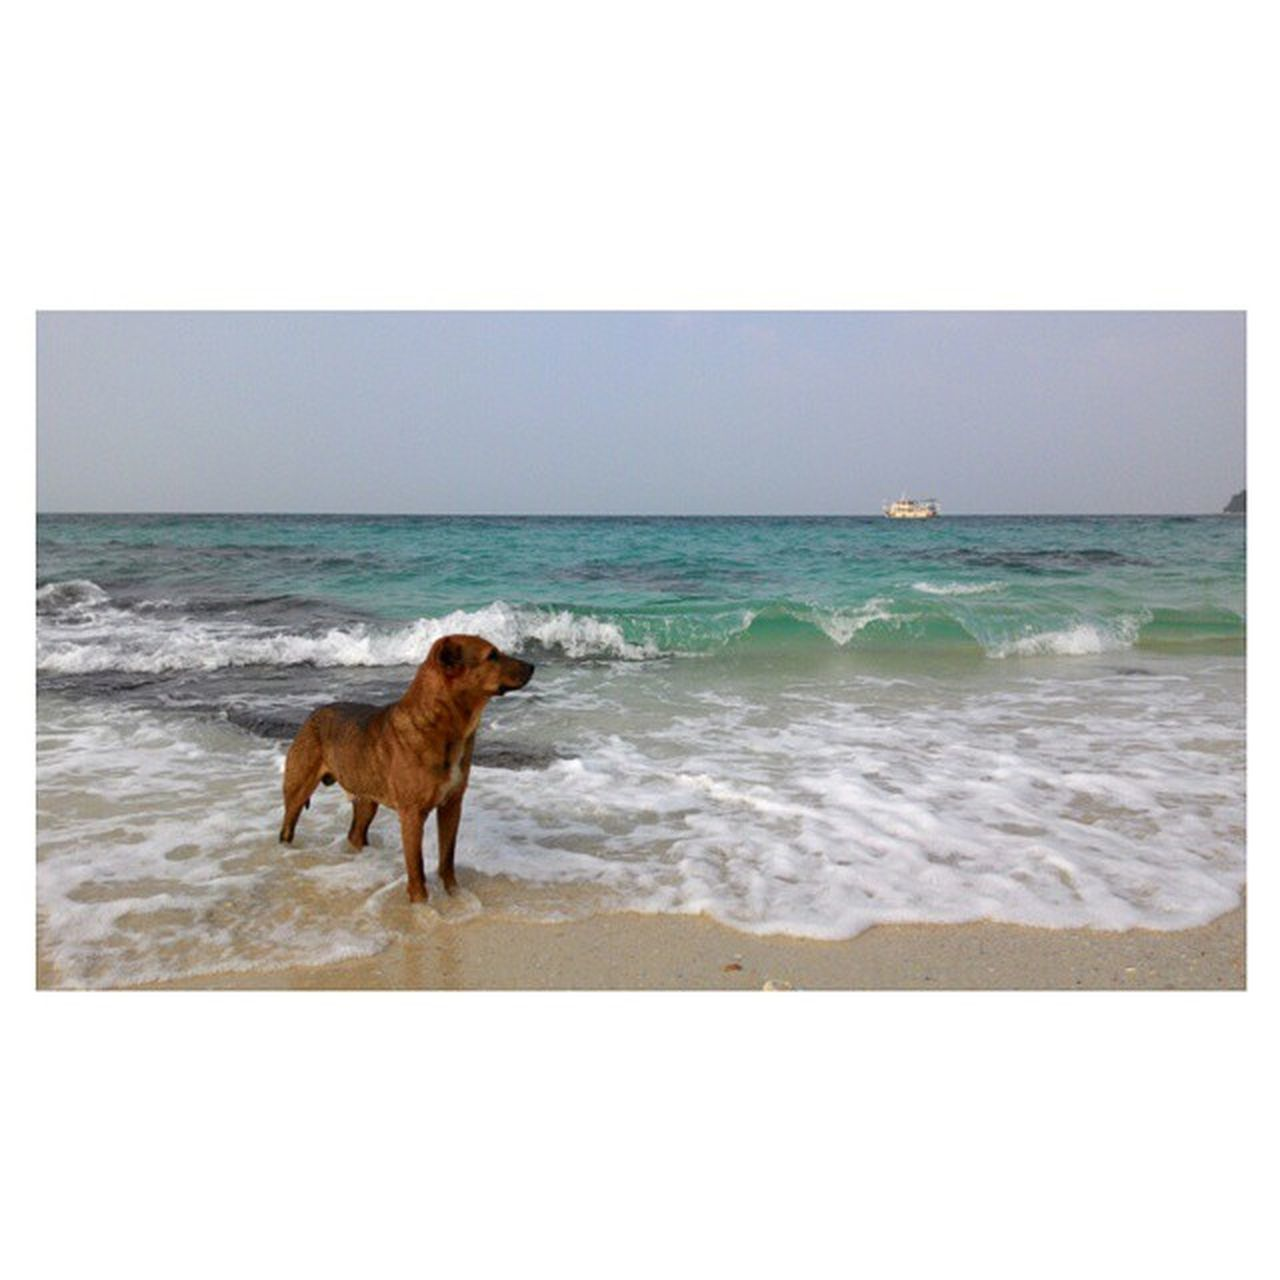 sea, horizon over water, beach, water, dog, animal themes, one animal, shore, nature, domestic animals, beauty in nature, scenics, clear sky, sand, pets, copy space, outdoors, sky, motion, mammal, day, wave, no people, full length